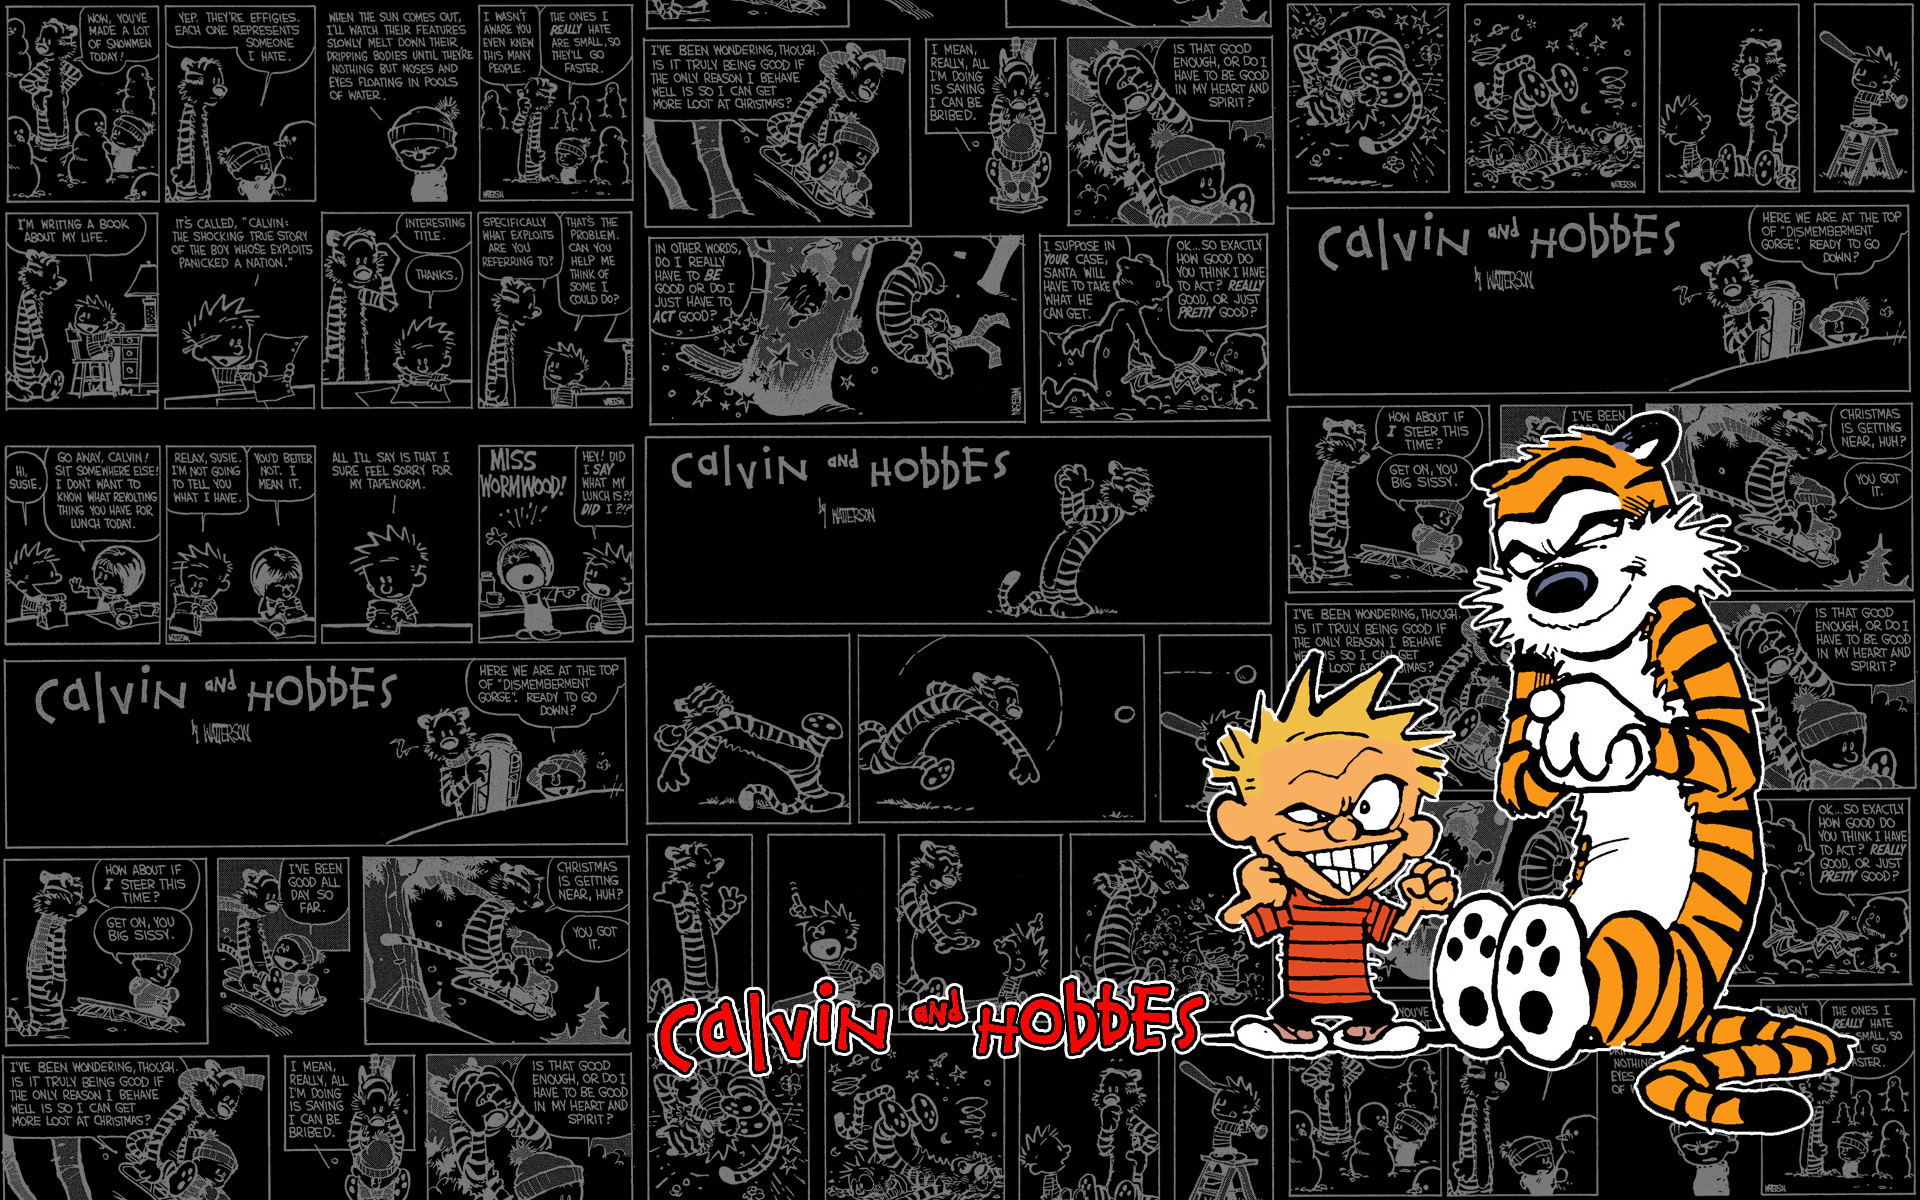 A Tribute to Calvin and Hobbes by WordofWar